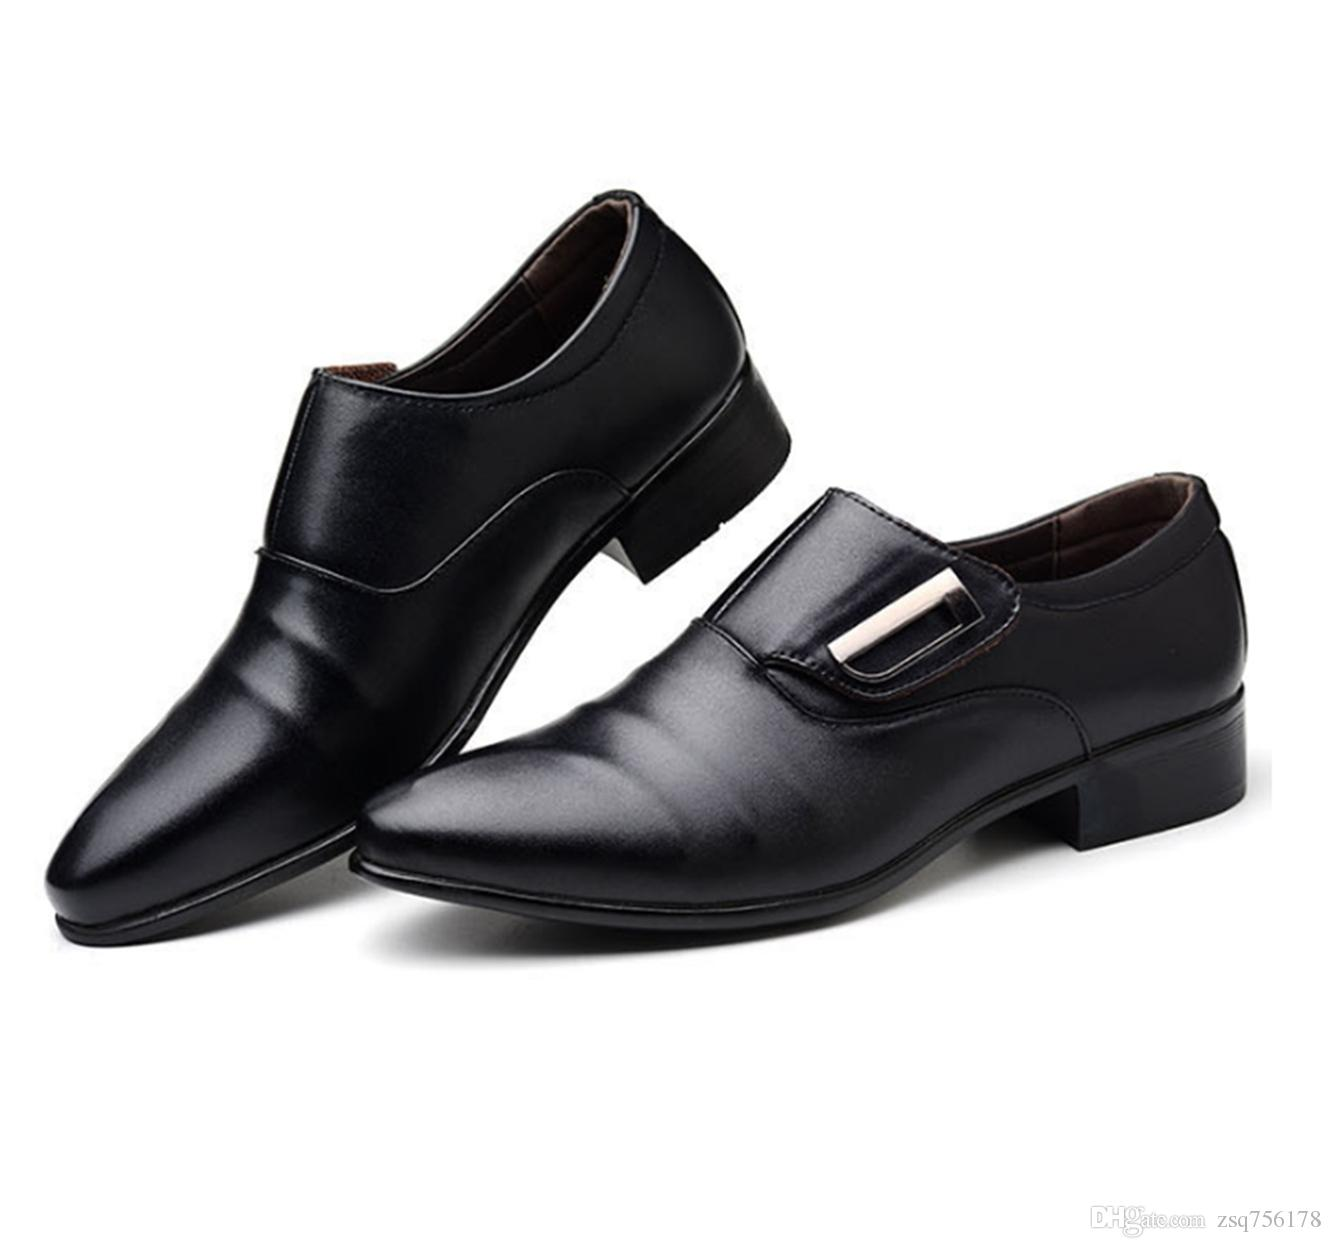 3e8dbe57d29e Men S Fashion High Quality Leather Shoes Pointed Toe Business Dress Formal  Office Work Shoes Wedding Party Prom Shoes Brown Dress Shoes Leather Shoes  For ...